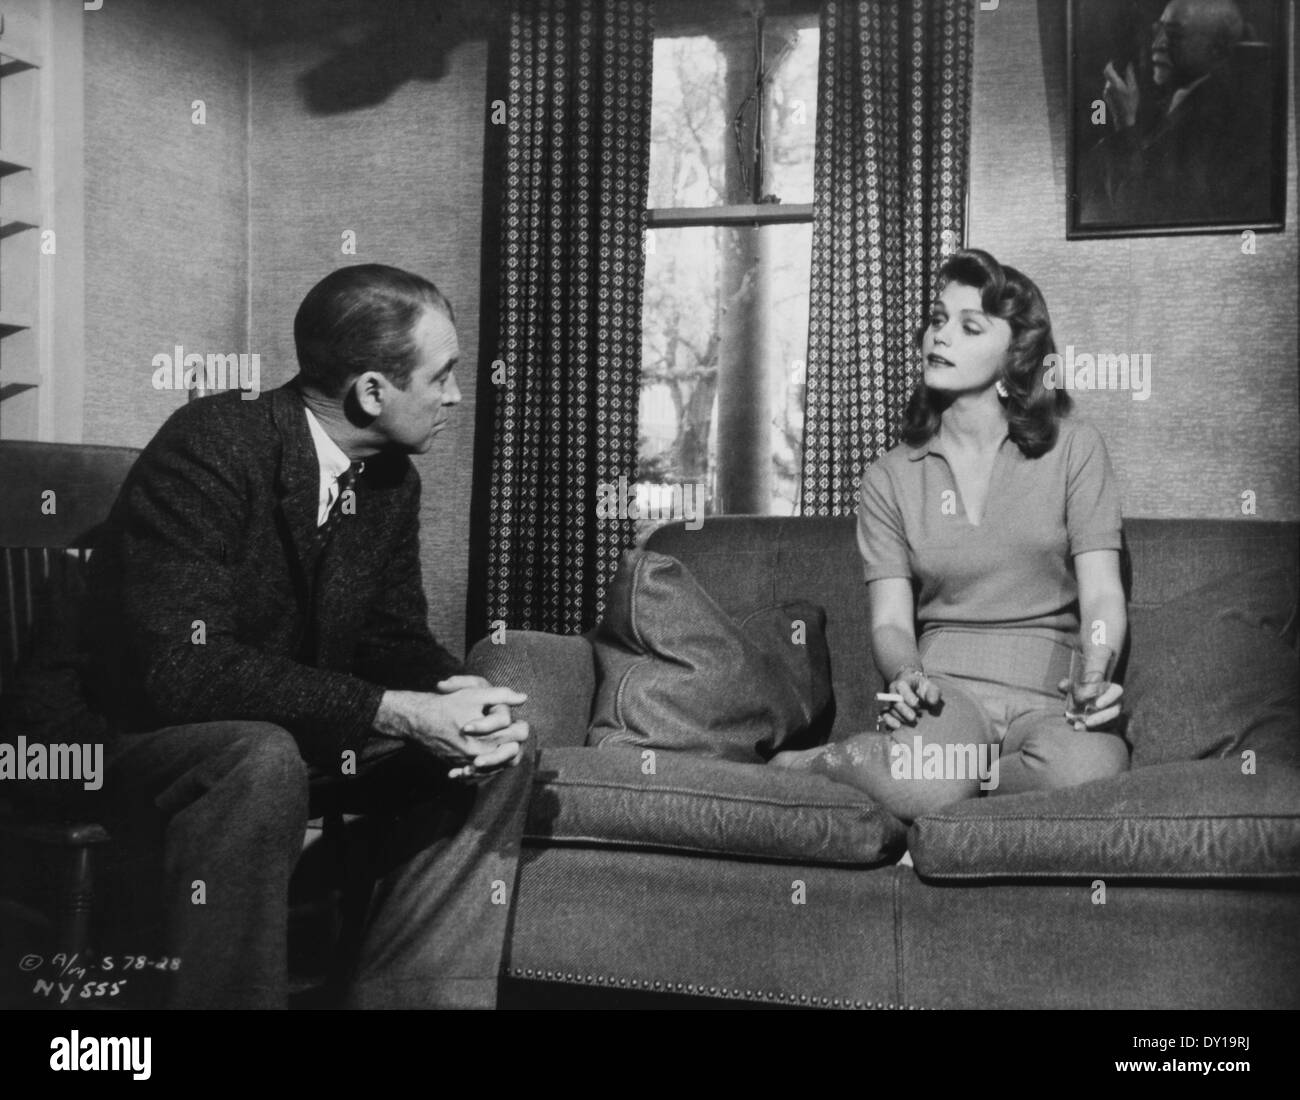 Lee remick anatomy of a murder